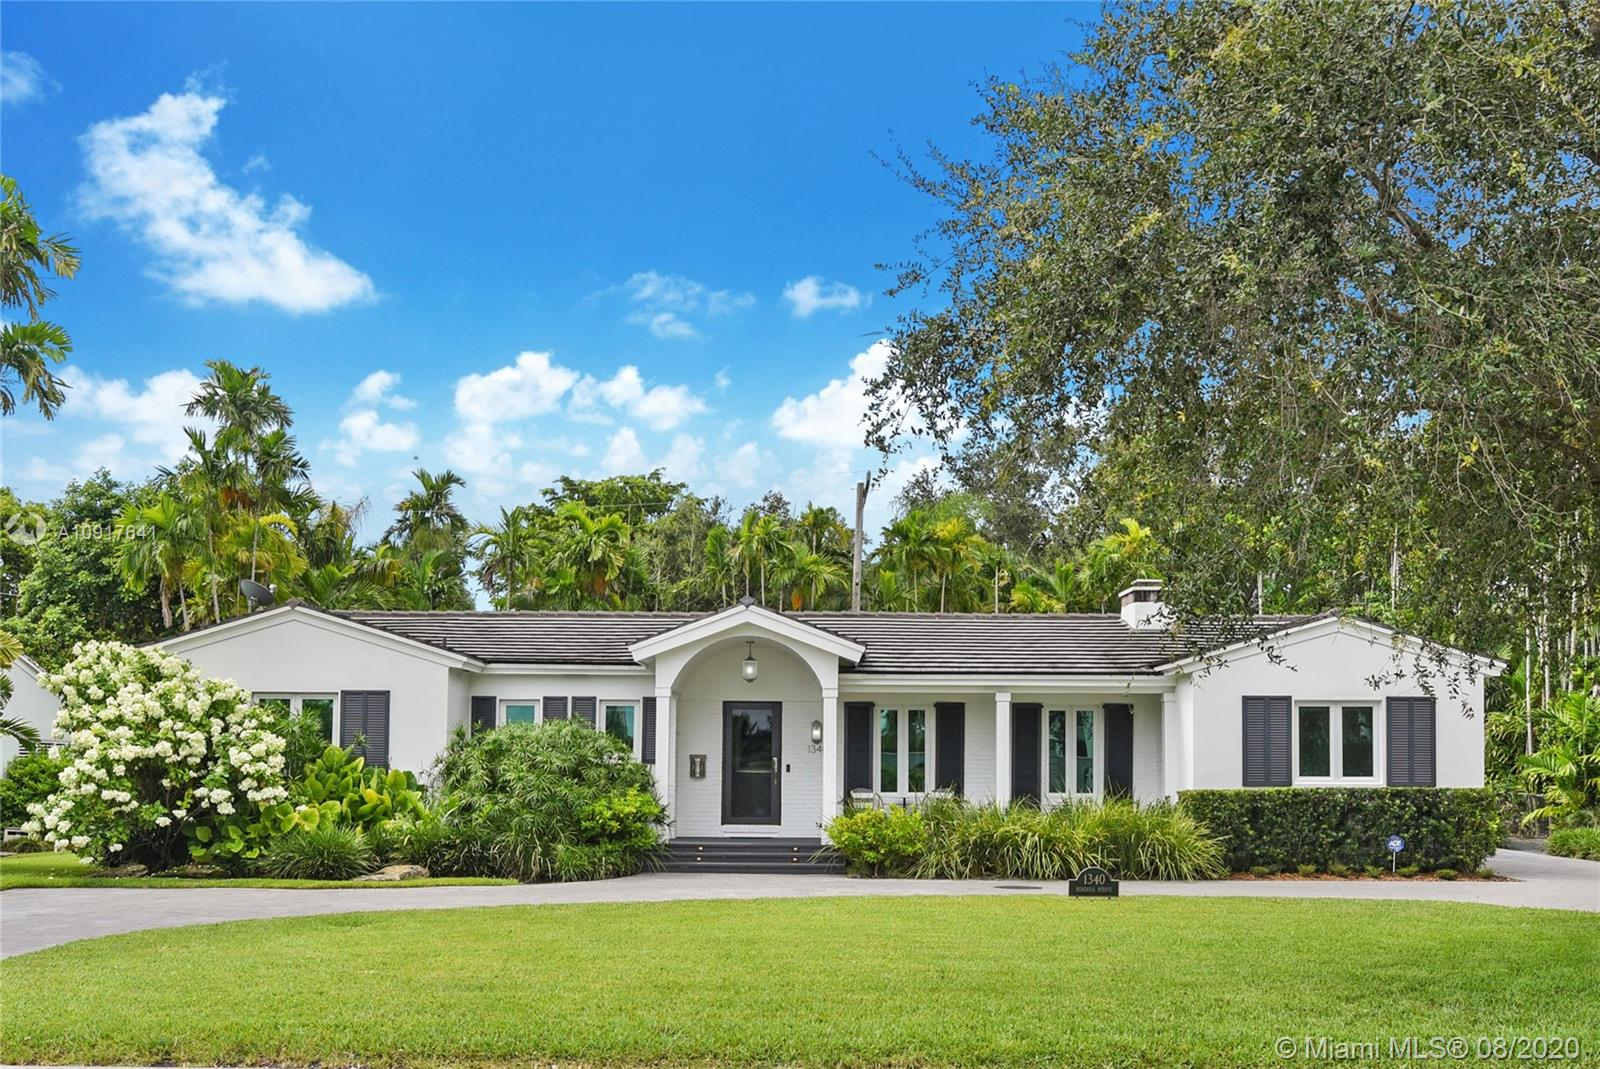 Gorgeous mid-century home overlooking Riviera Golf course with views of The Biltmore Hotel just west of Santa Maria Street. Completely remodeled, this 2019 Coral Gables Tour of Kitchen's home is a chef's dream: custom cabinetry; large island; Sub-Zero and Wolf appliances. Kitchen is fully open to family room with views of the lush backyard paradise -pool and spa. Hardwood floors throughout, large bedrooms and designer finishes. Expansive master suite includes marble bathroom, dual vanity, double rain shower, walk in closet and dedicated shoe closet. Separate office with two built in desks for working from home or virtual school. Impact windows and doors, 1,000 gallon underground propane tank, security system, and circular drive with parking for up to 10 cars.  Walk to Riviera Country Club.